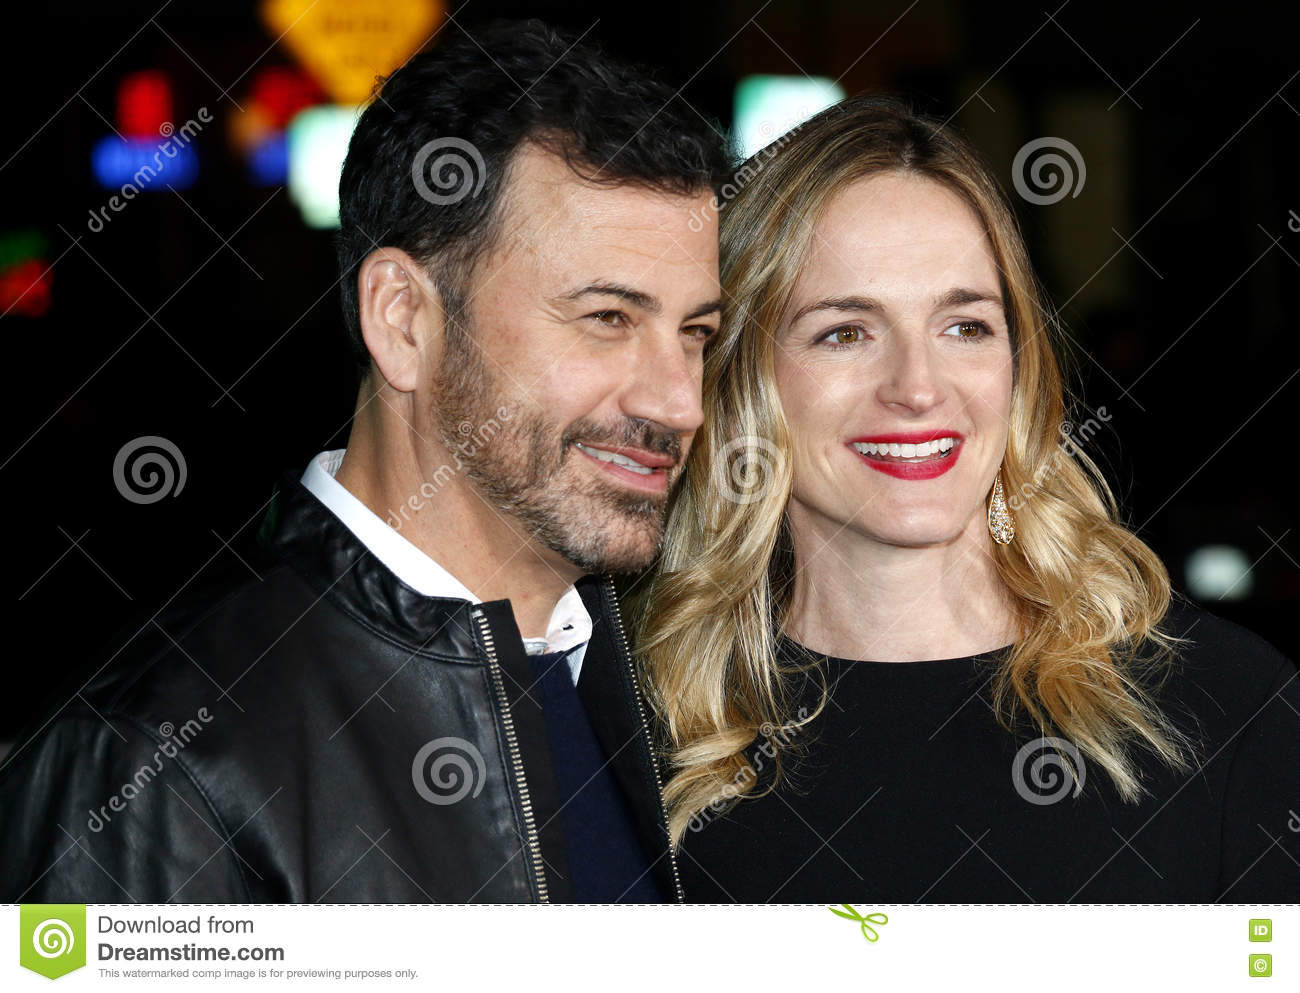 Jimmy Kimmel And Molly McNearney Editorial Stock Image - Image of ...